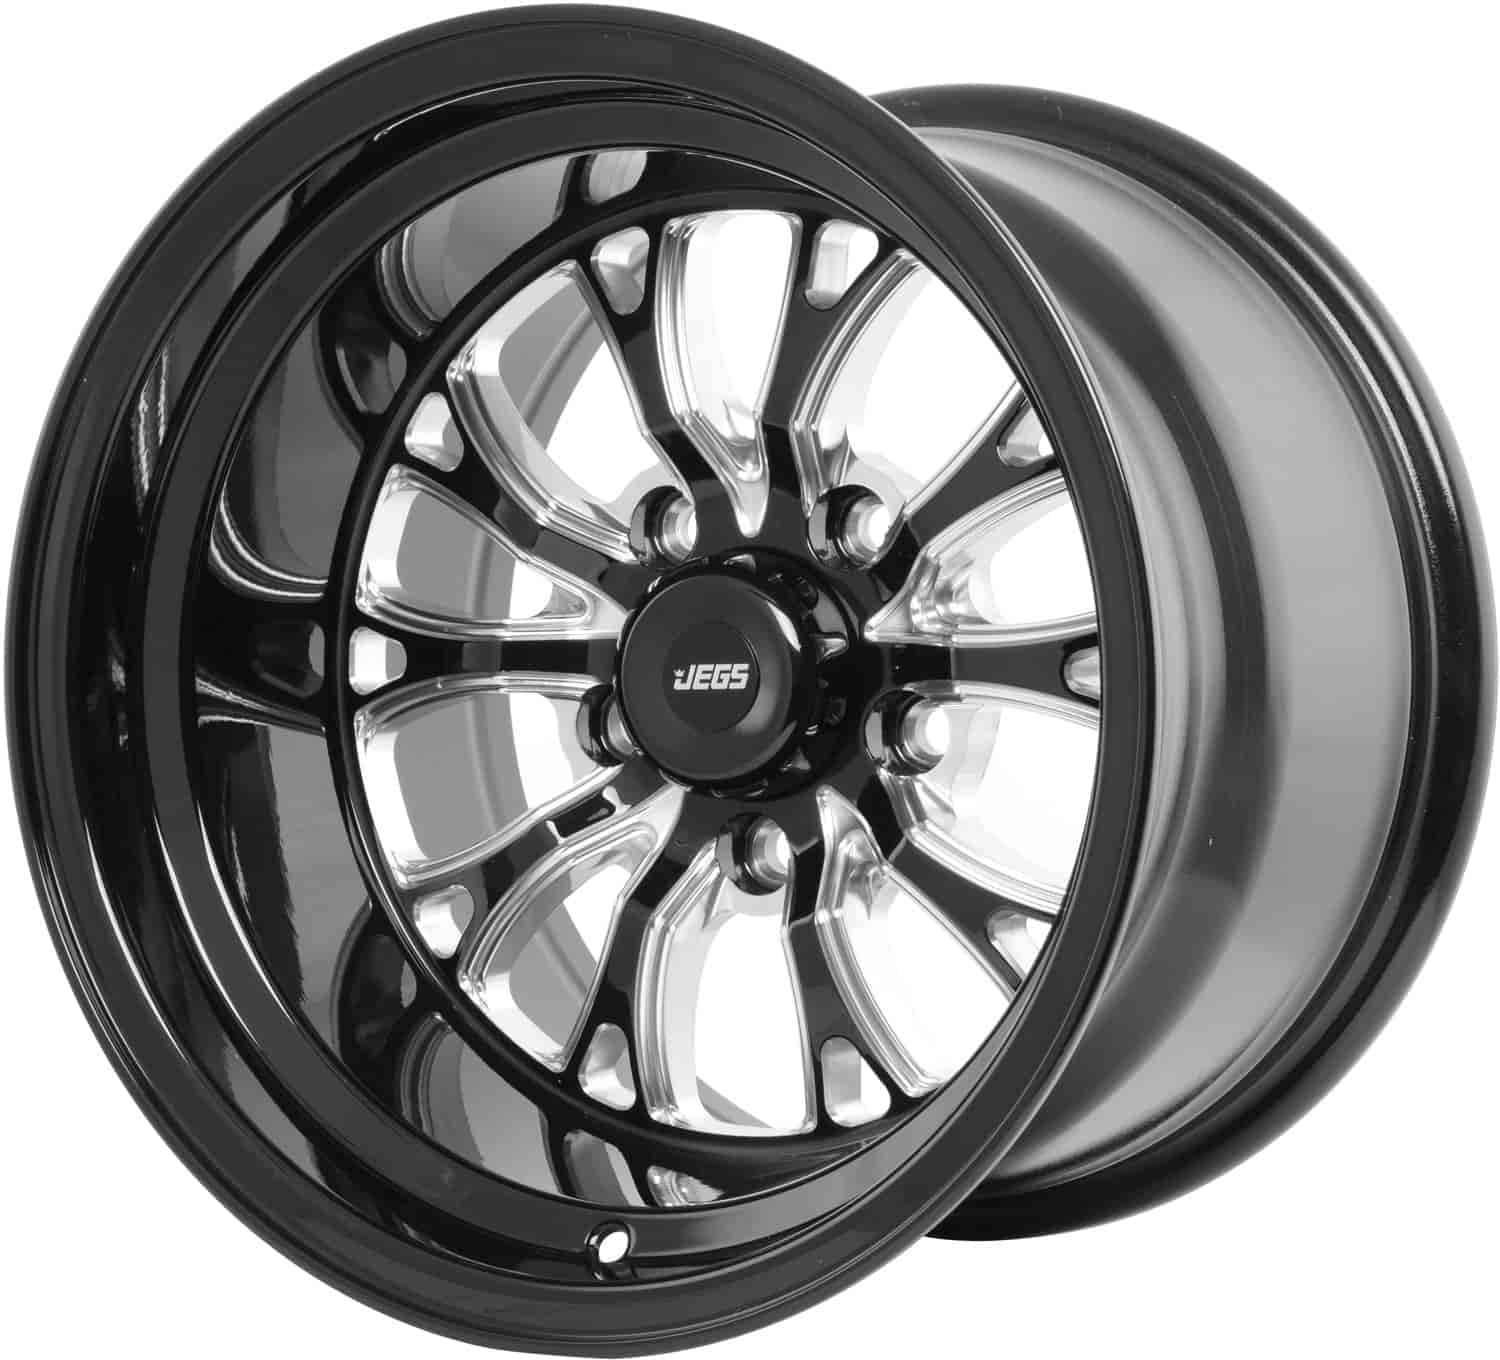 JEGS Performance Products SSR Spike Wheel Diameter & Width